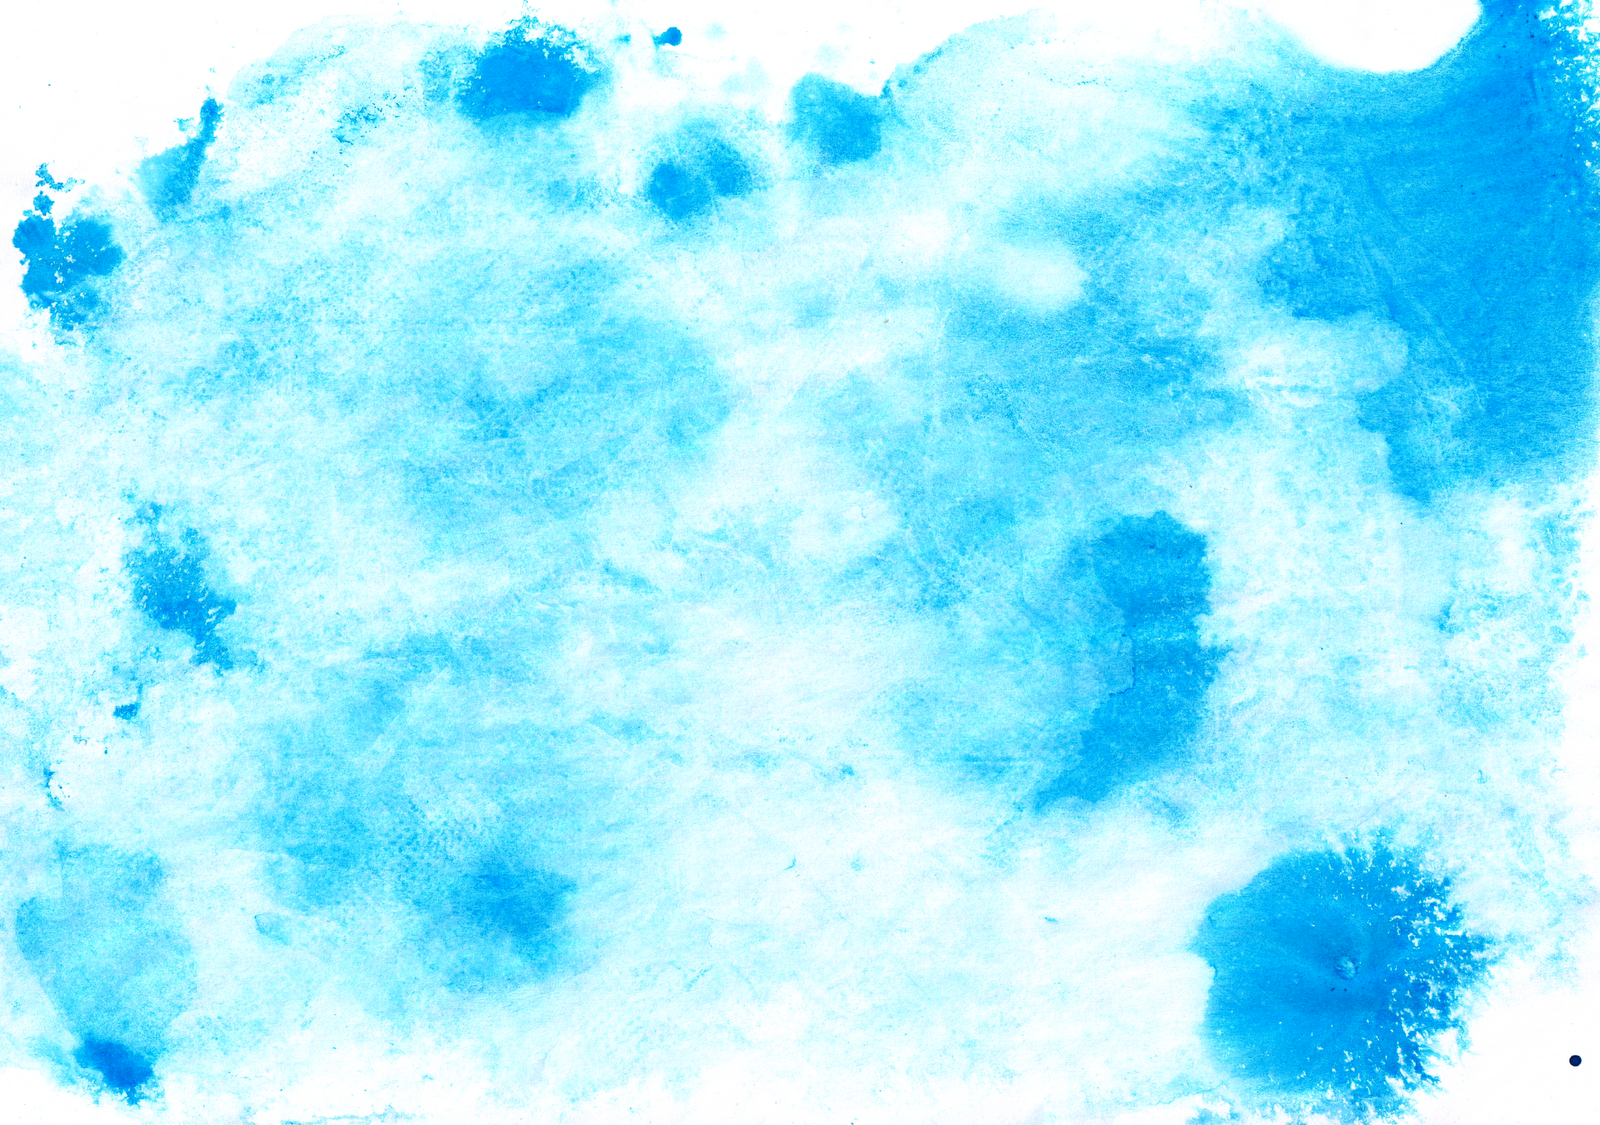 Free illustration watercolor pigment color free image - 4 Grungy Bright Colored Blue Watercolor On Napkin Textures Reusage